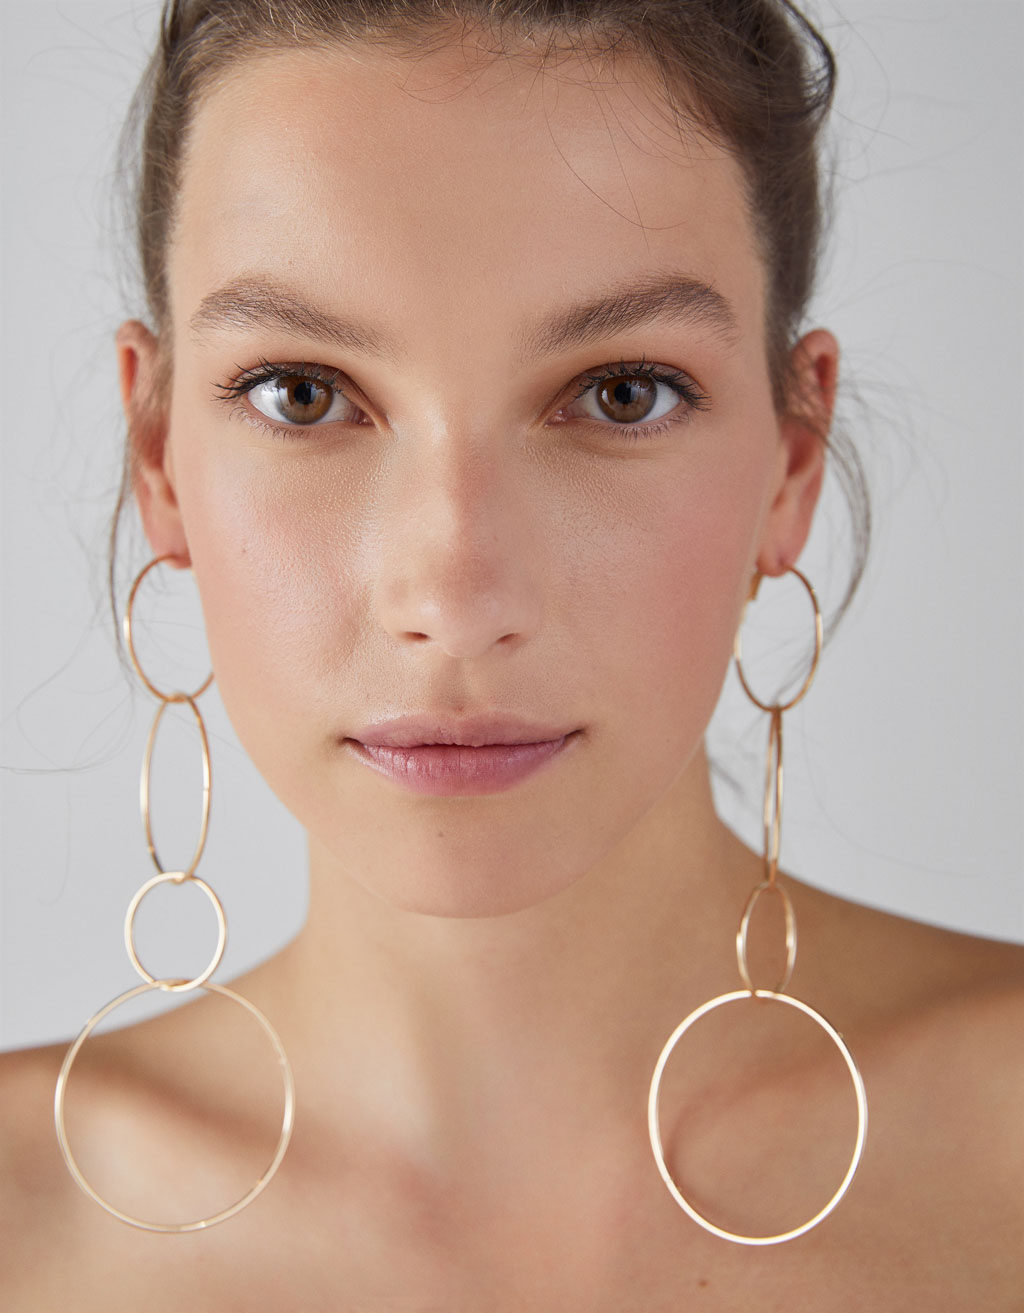 Linked hoops earrings